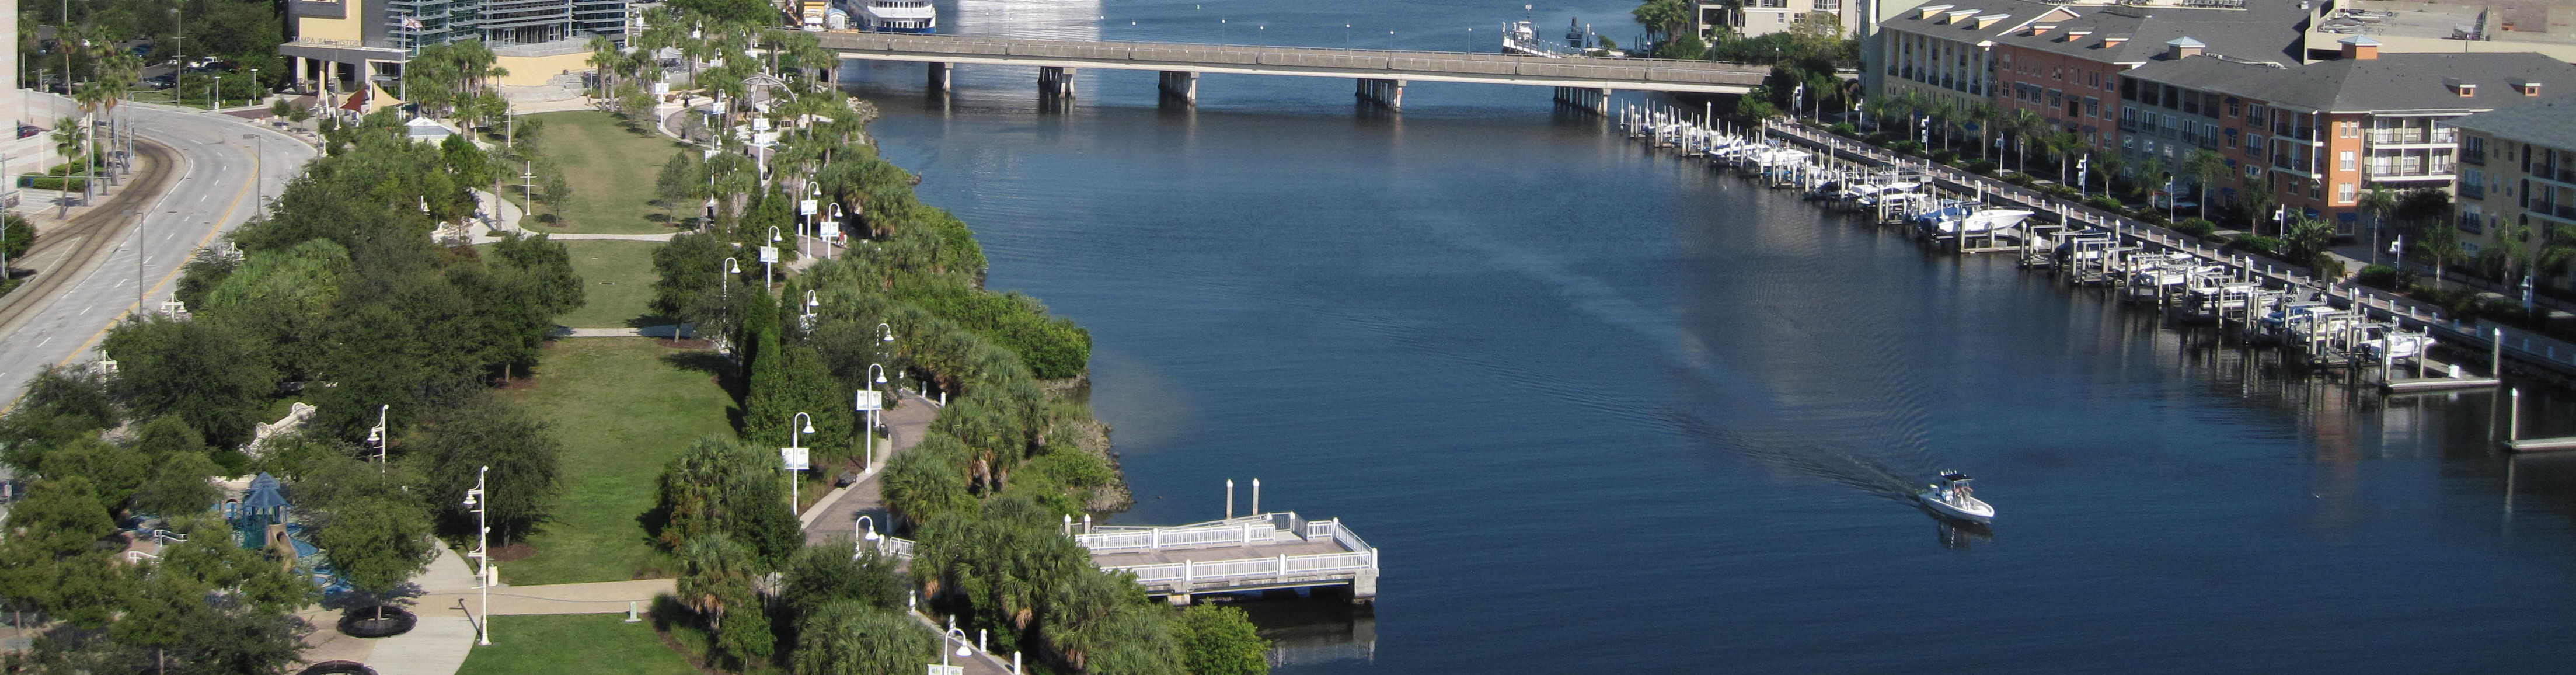 Tampa, Site of the 2010 Conference